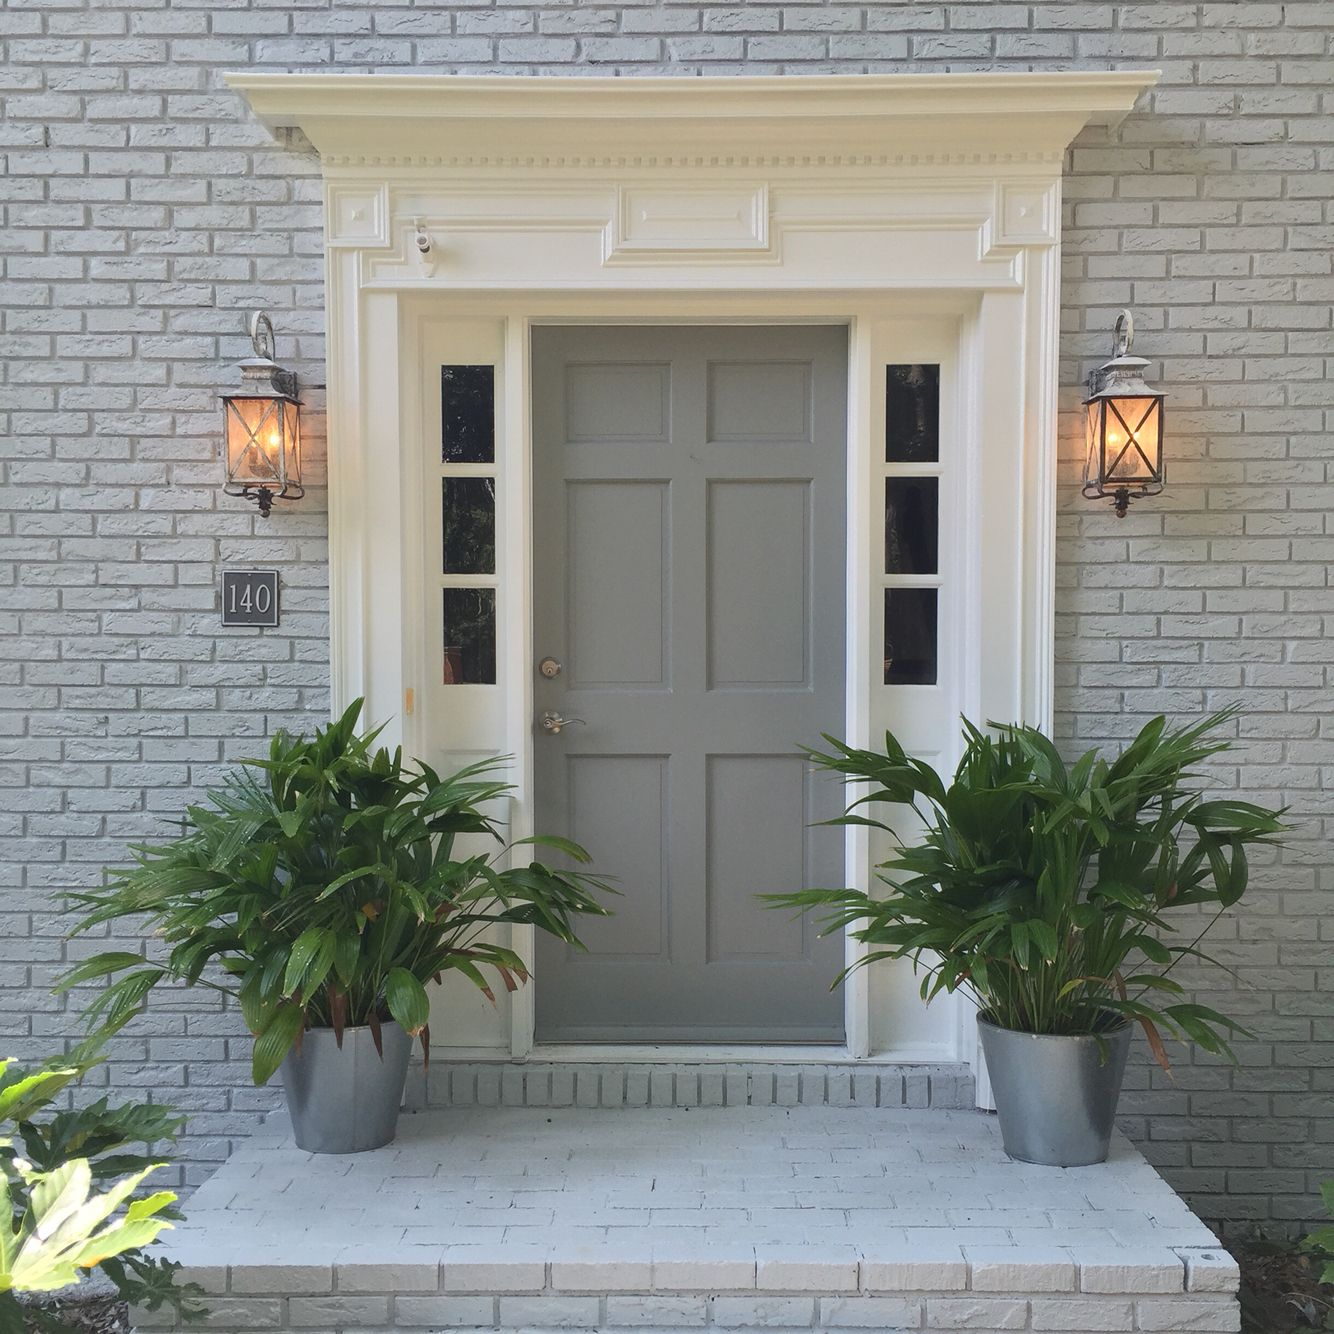 New house exterior color scheme sherwin williams gray Best front door colors for brick house